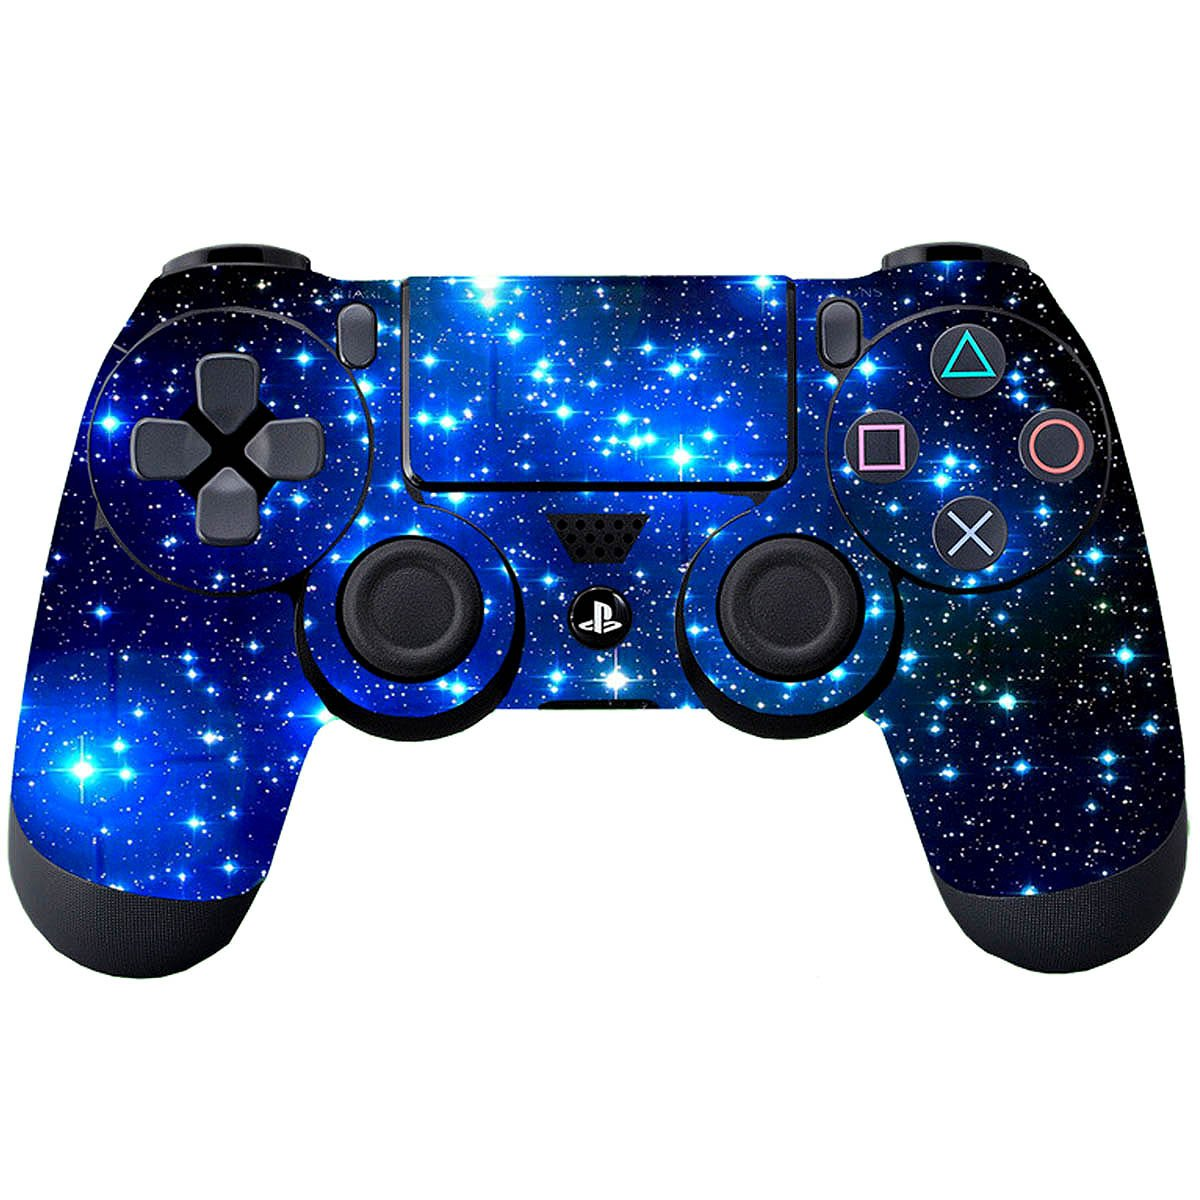 Vinyl Decal Sticker Cover for Sony PlayStation 4 DualShock 4 Wireless Controller SubClap 4 Packs PS4 Controller Skin Shing Blue